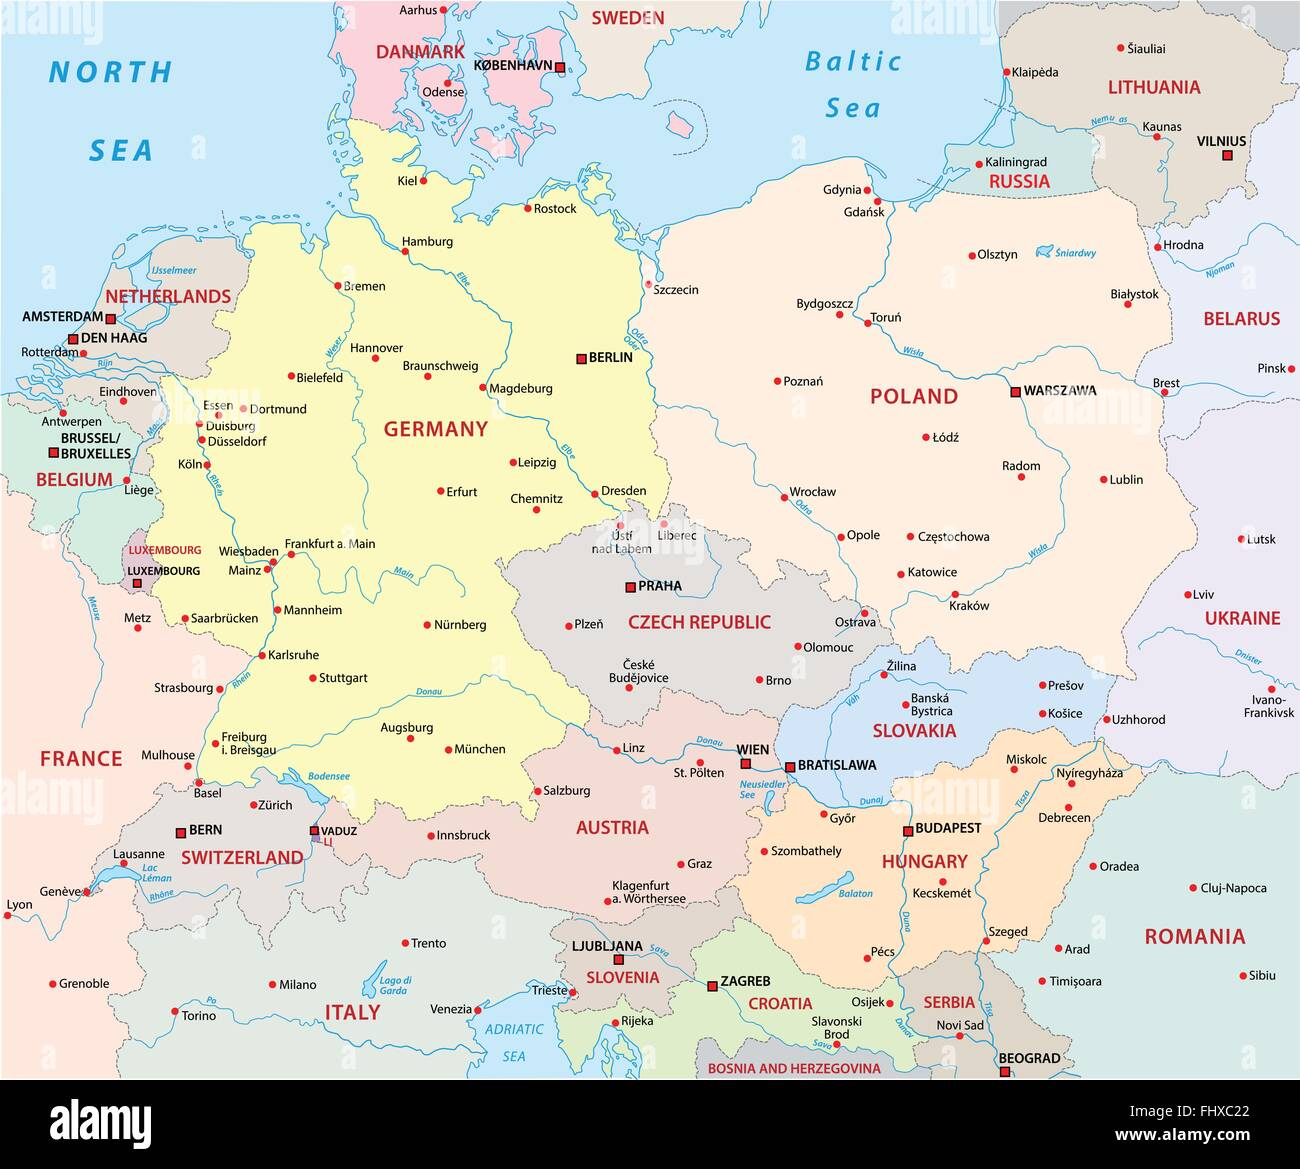 central europe map Stock Vector Art & Illustration, Vector Image ...